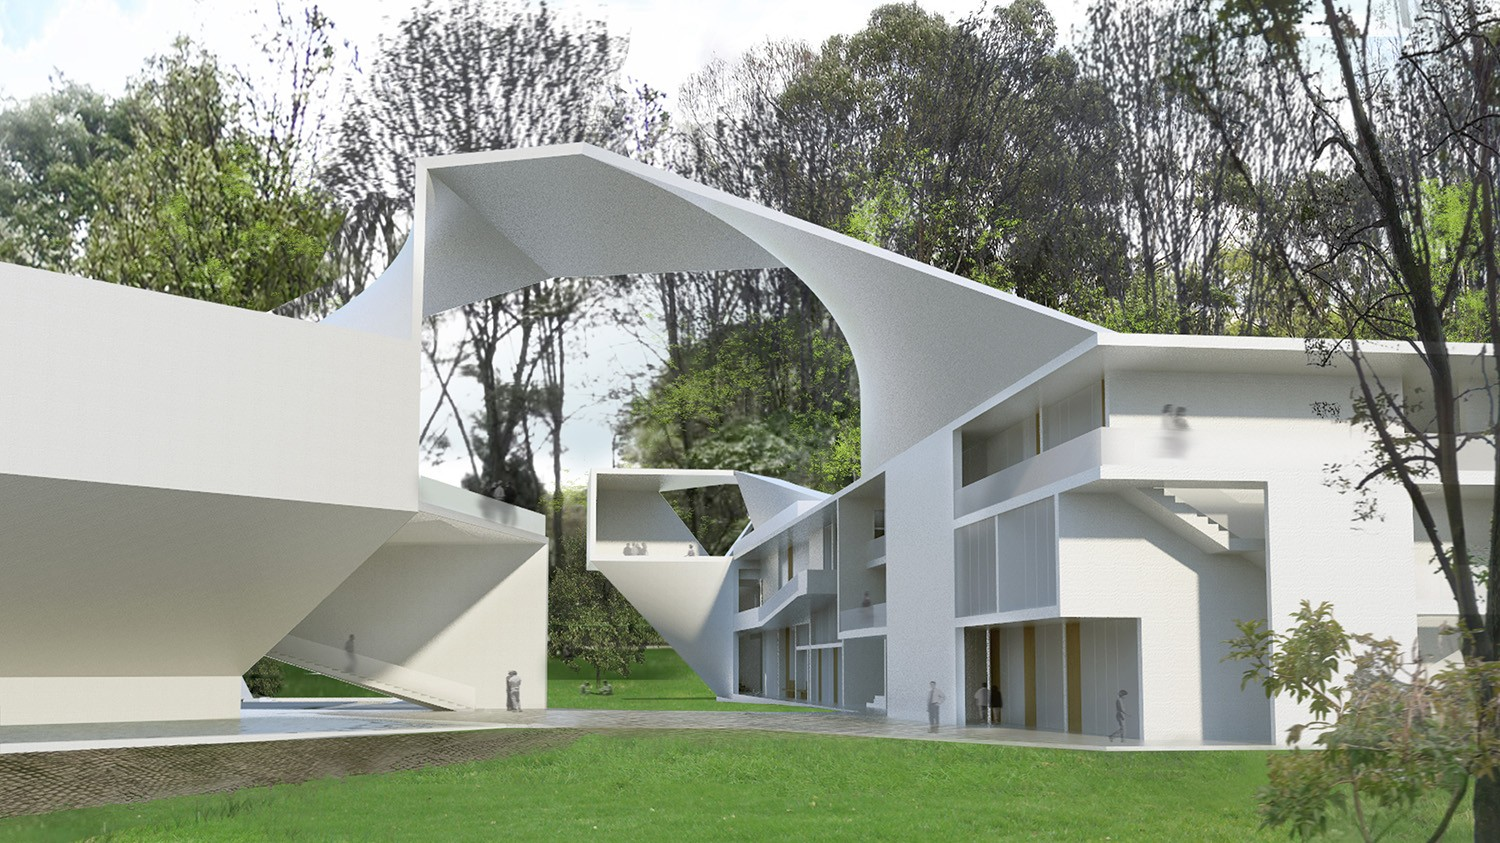 https://stevenholl.sfo2.digitaloceanspaces.com/uploads/projects/project-images/StevenHollArchitects_Bogota_WESTVIEW_WH.jpg